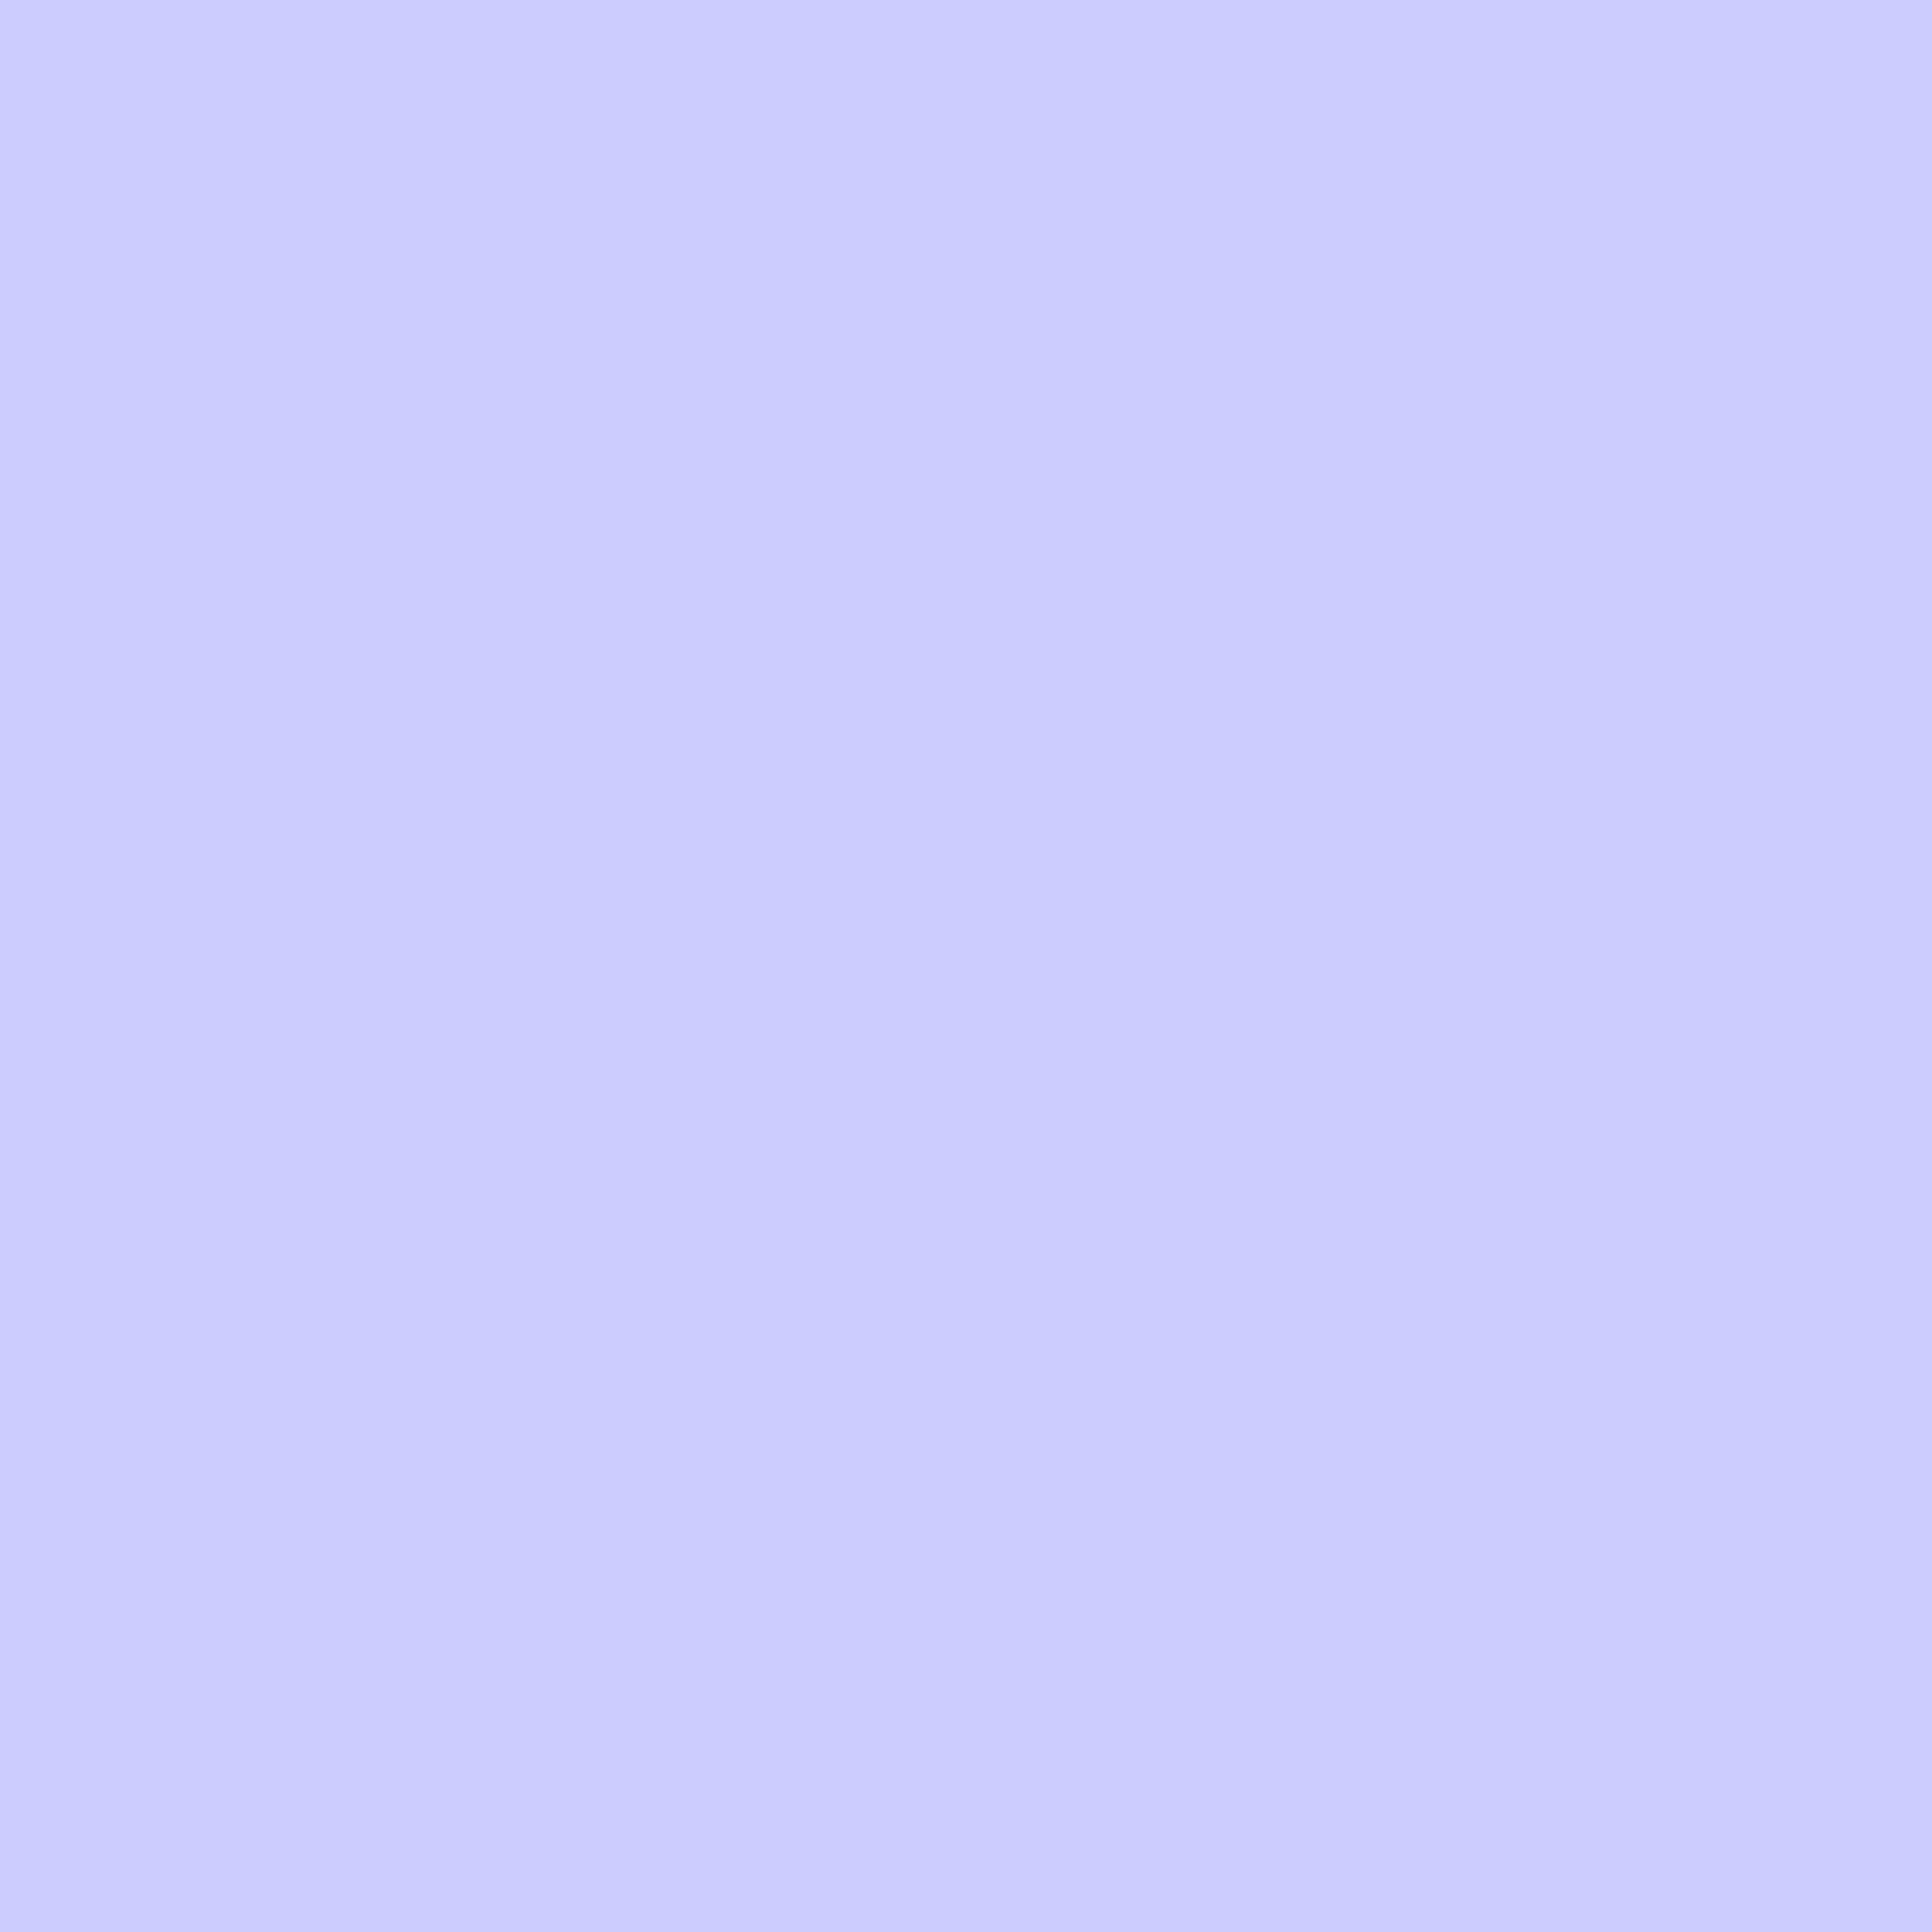 2048x2048 Lavender Blue Solid Color Background